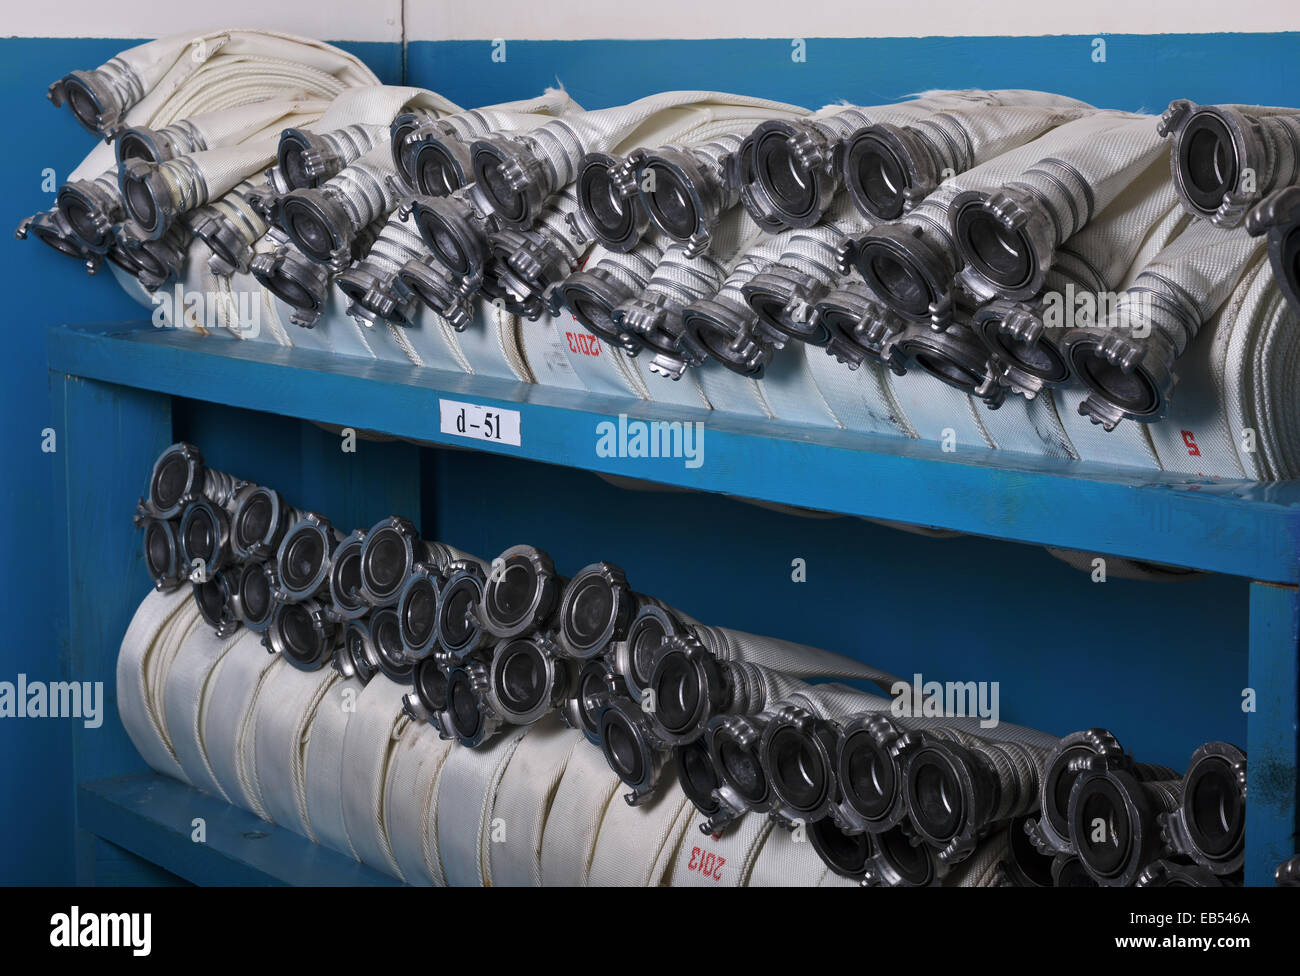 Storage of fire hoses to fire department - Stock Image